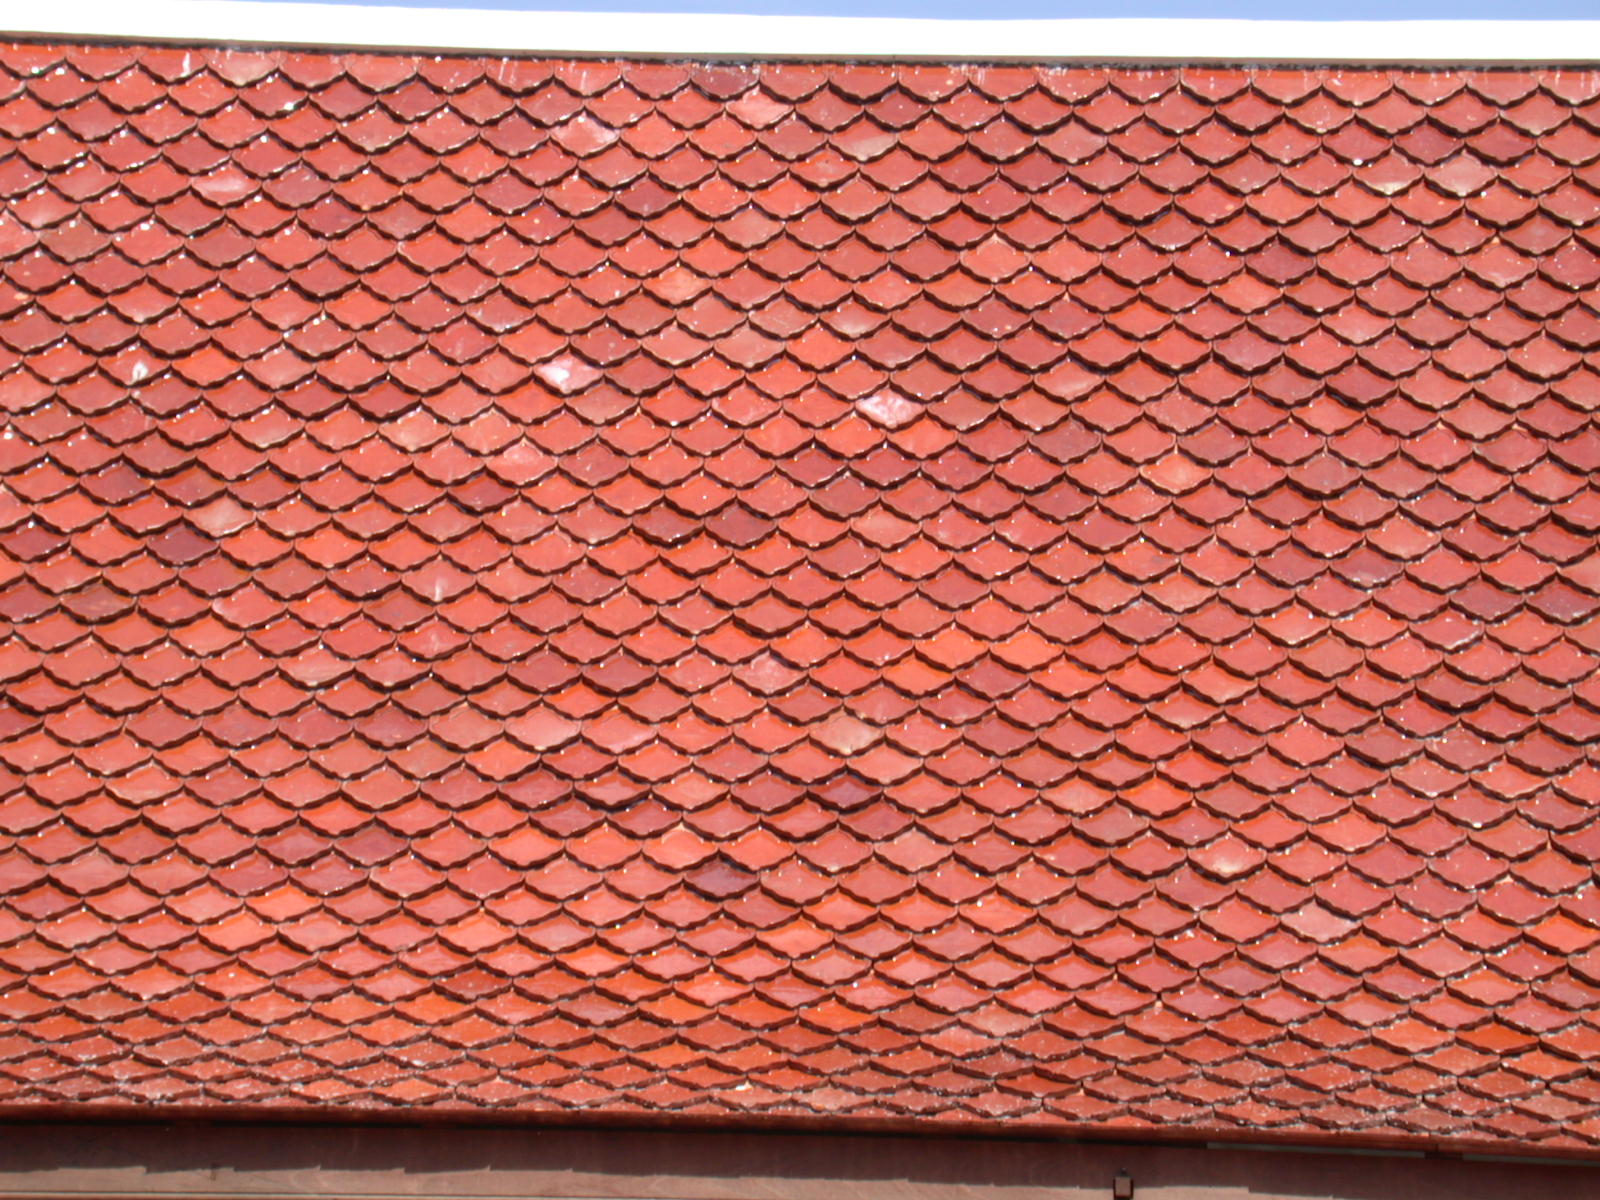 Image after texture roof tile tiles roofing red slope for Roof tile patterns